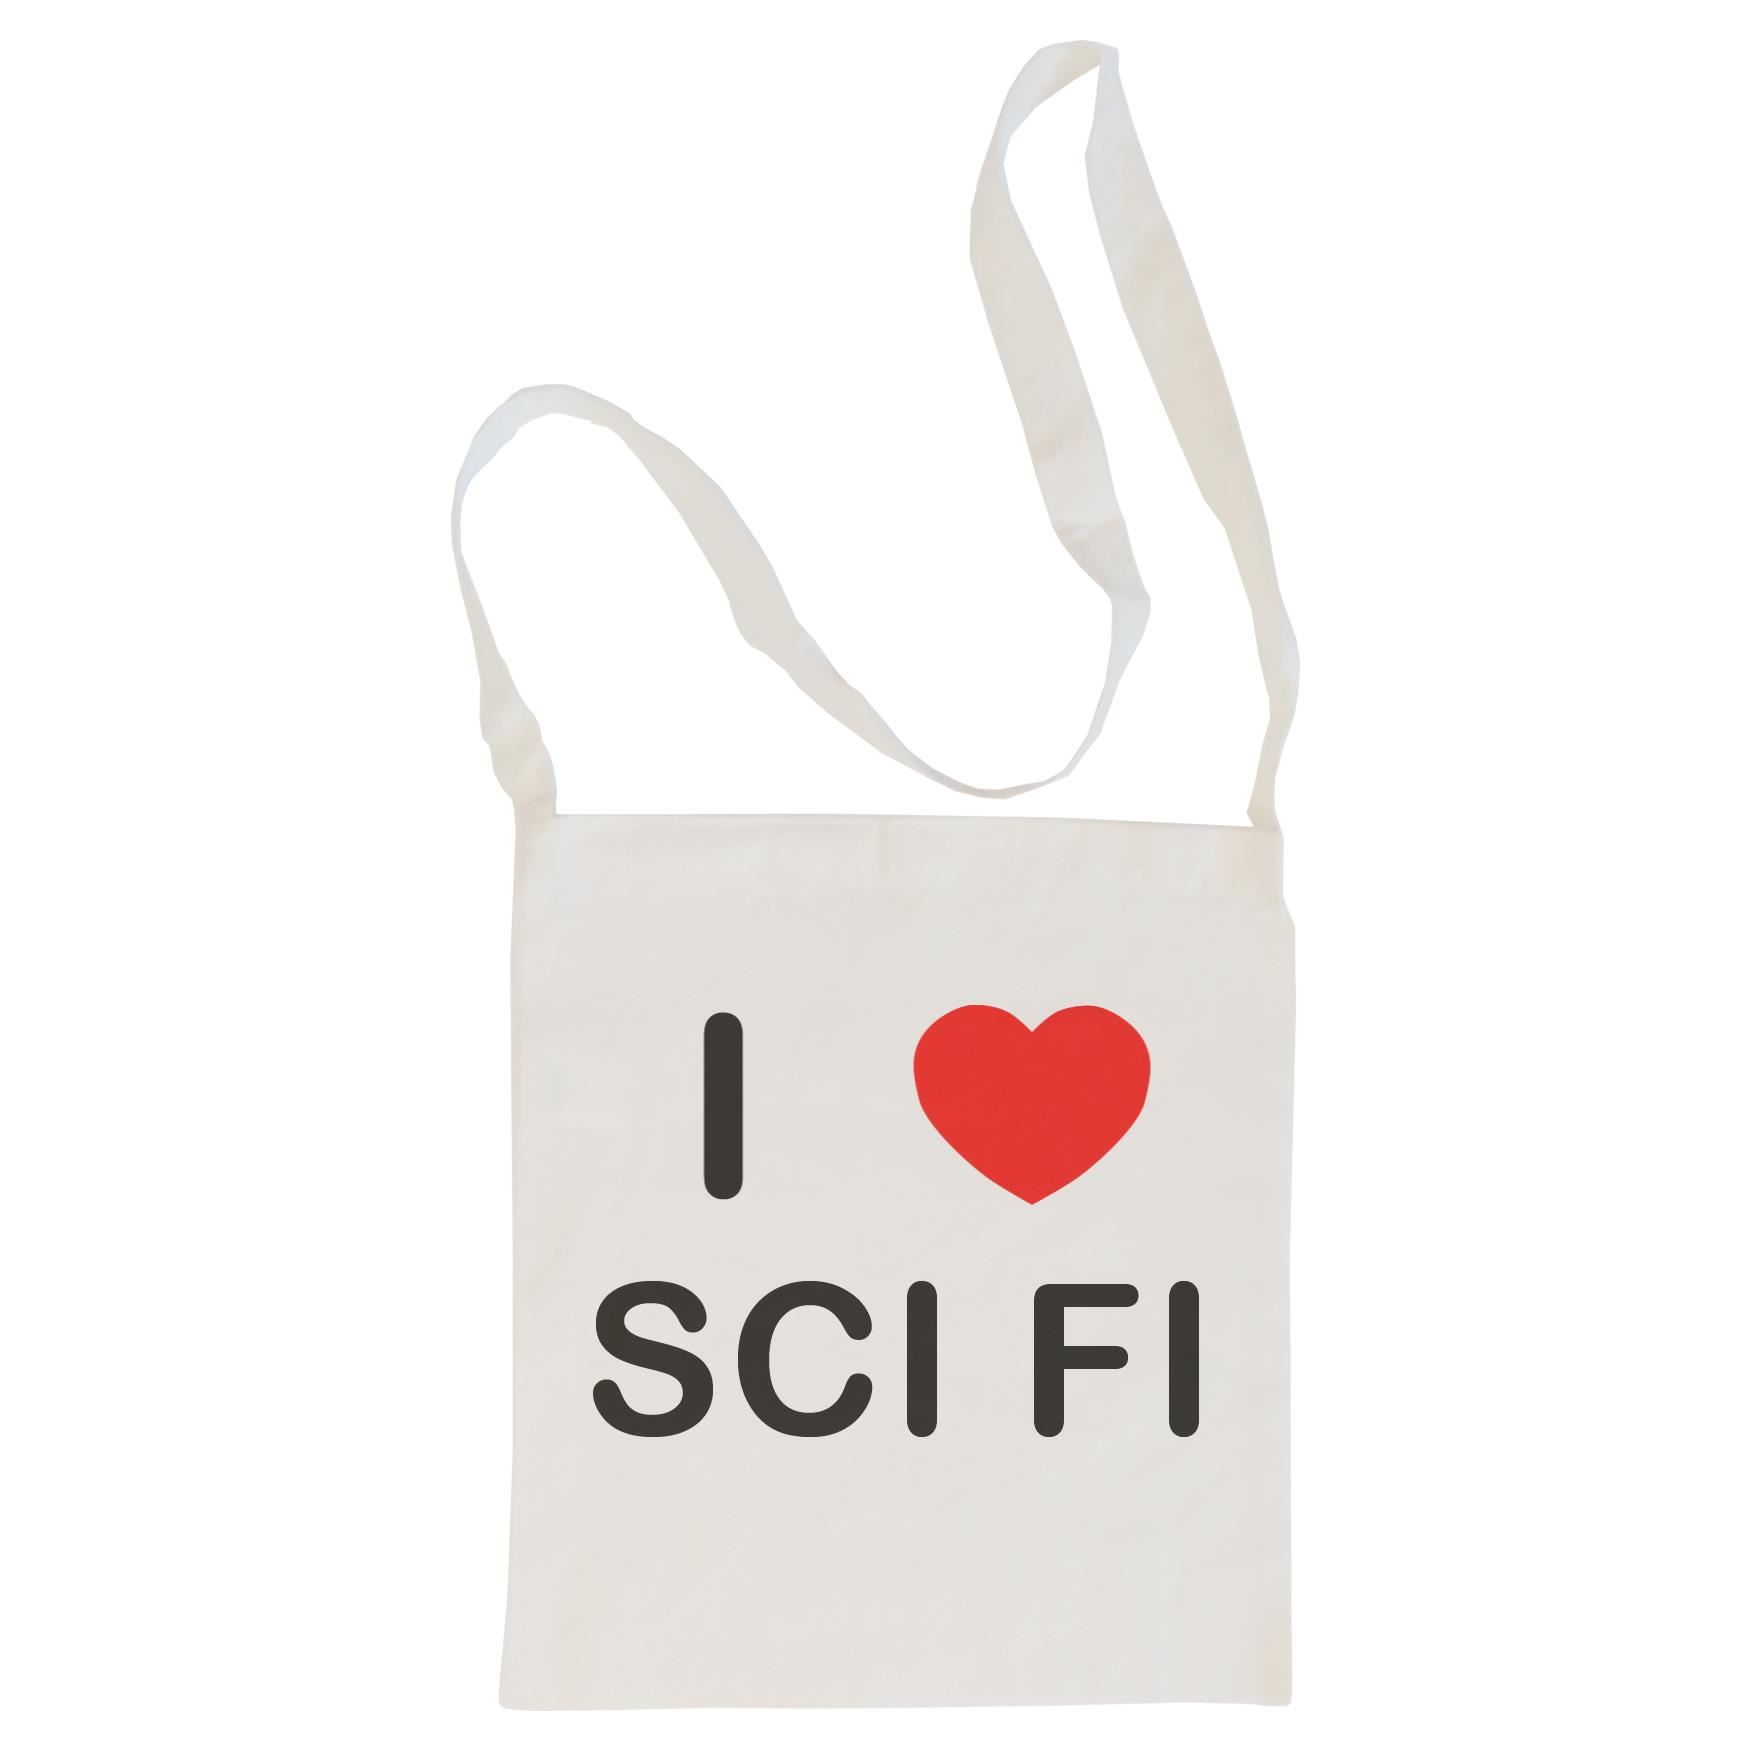 I Love Sci Fi - Cotton Bag | Size choice Tote, Shopper or Sling